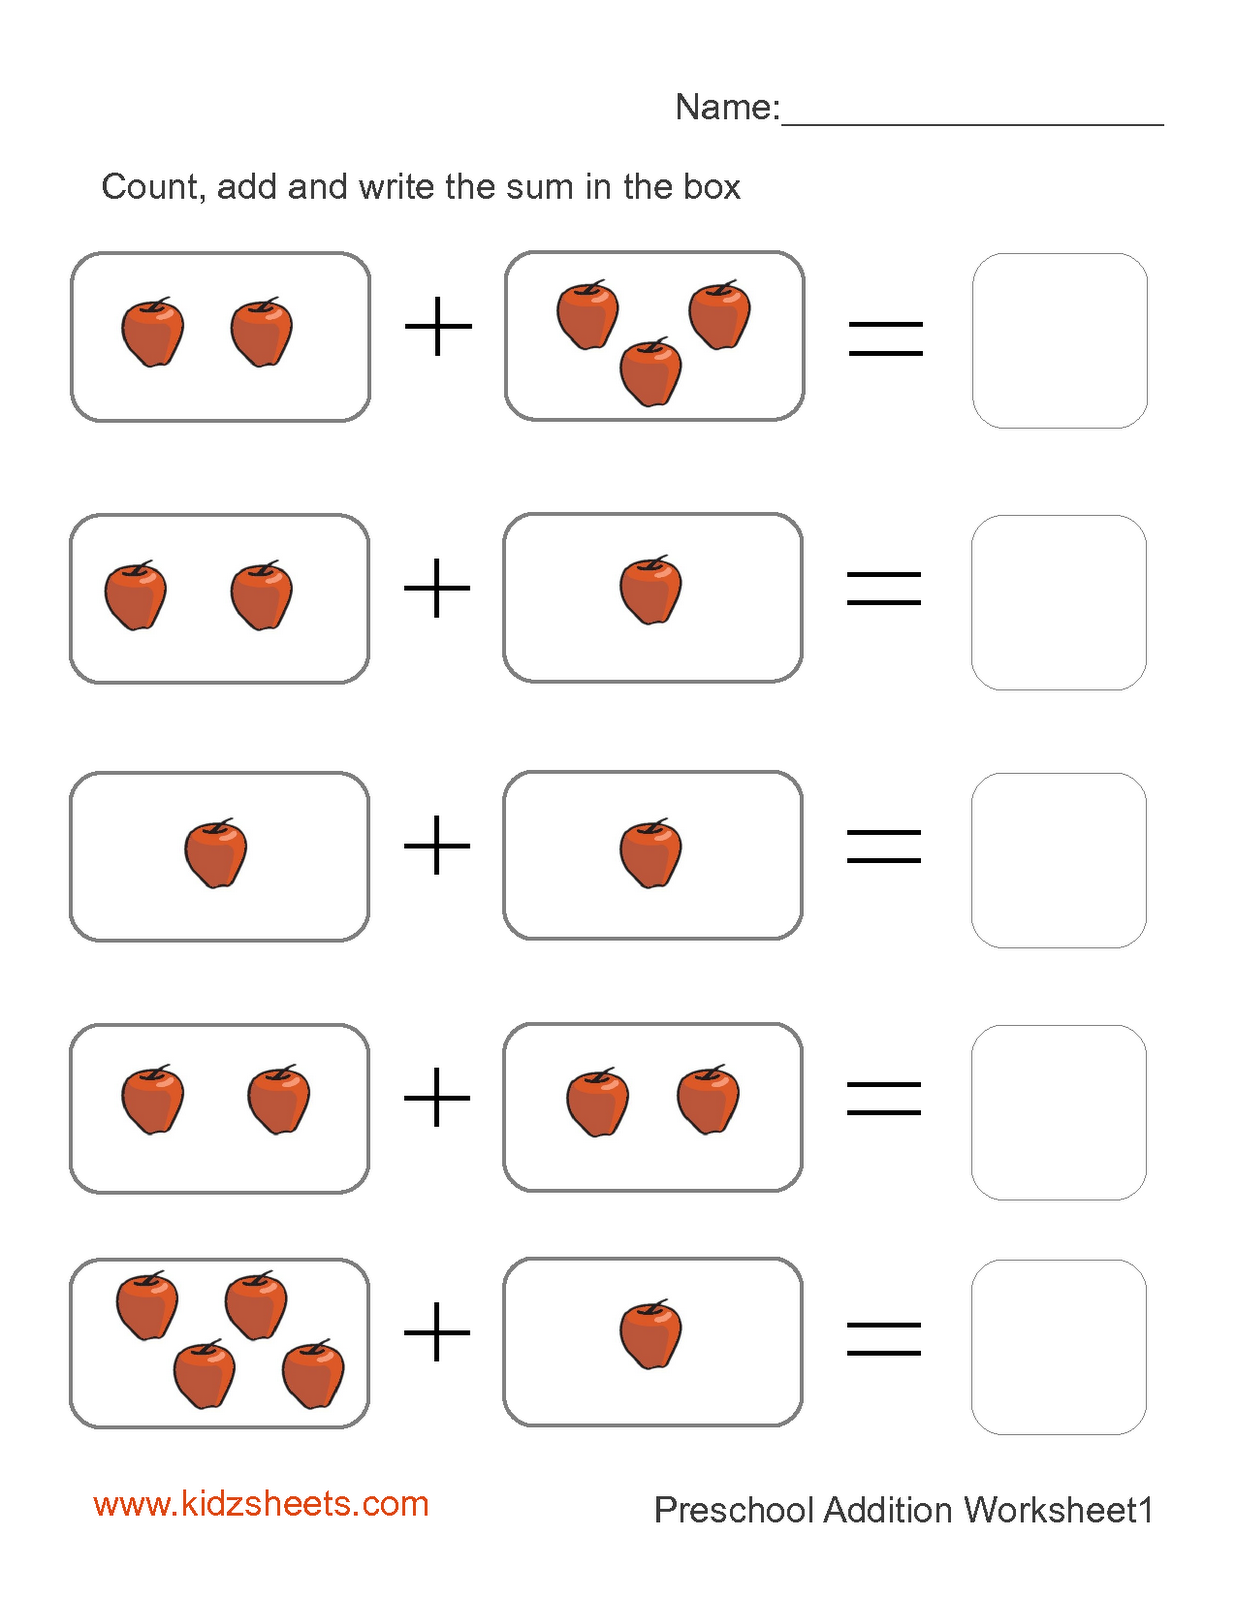 math worksheet : 1000 images about number maths on pinterest  numbers math and  : Preschool Math Worksheet